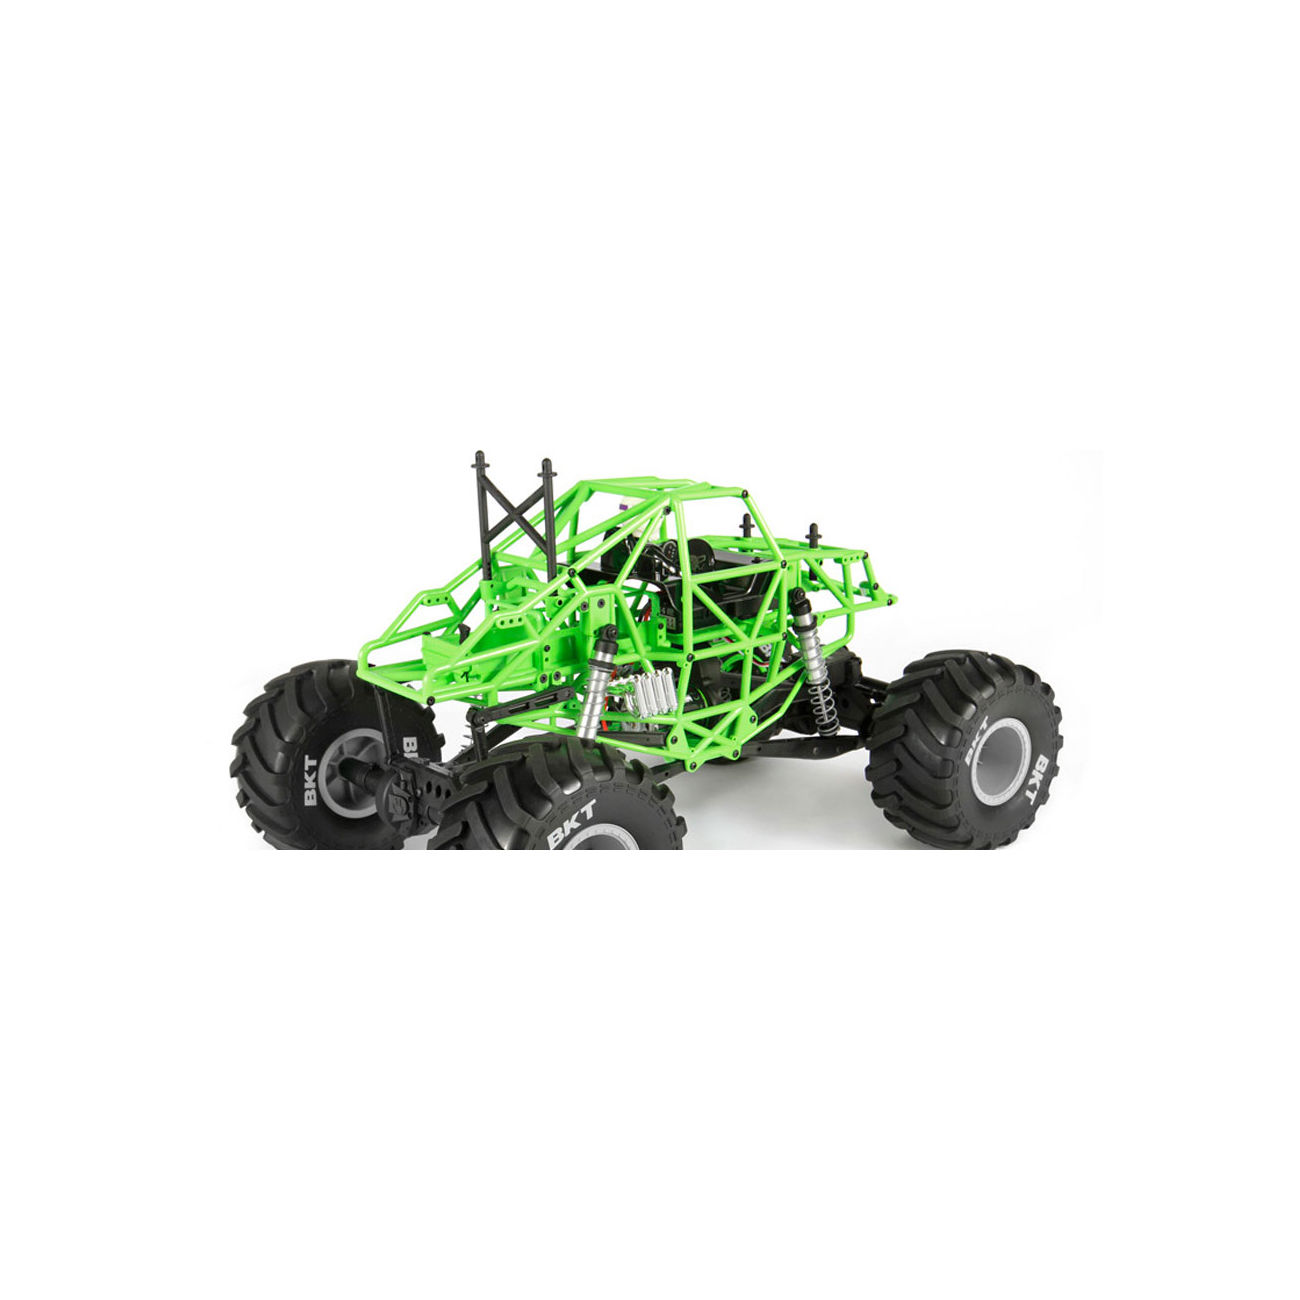 rc monster jam trucks for sale with Axial 1 10 Smt10 Grave Digger 4wd Monster Truck 24 Ghz Rtr Set Ax90055 on Grave Digger Rc together with As Promised I Will Post One Of Cakes I in addition Nissan Altima Sedan Modified also Marc Jacobs Light Filtering Contour Powder additionally Bigfoot Is Real And Itll Appear At The Atlanta Motorama With Its Offspring.